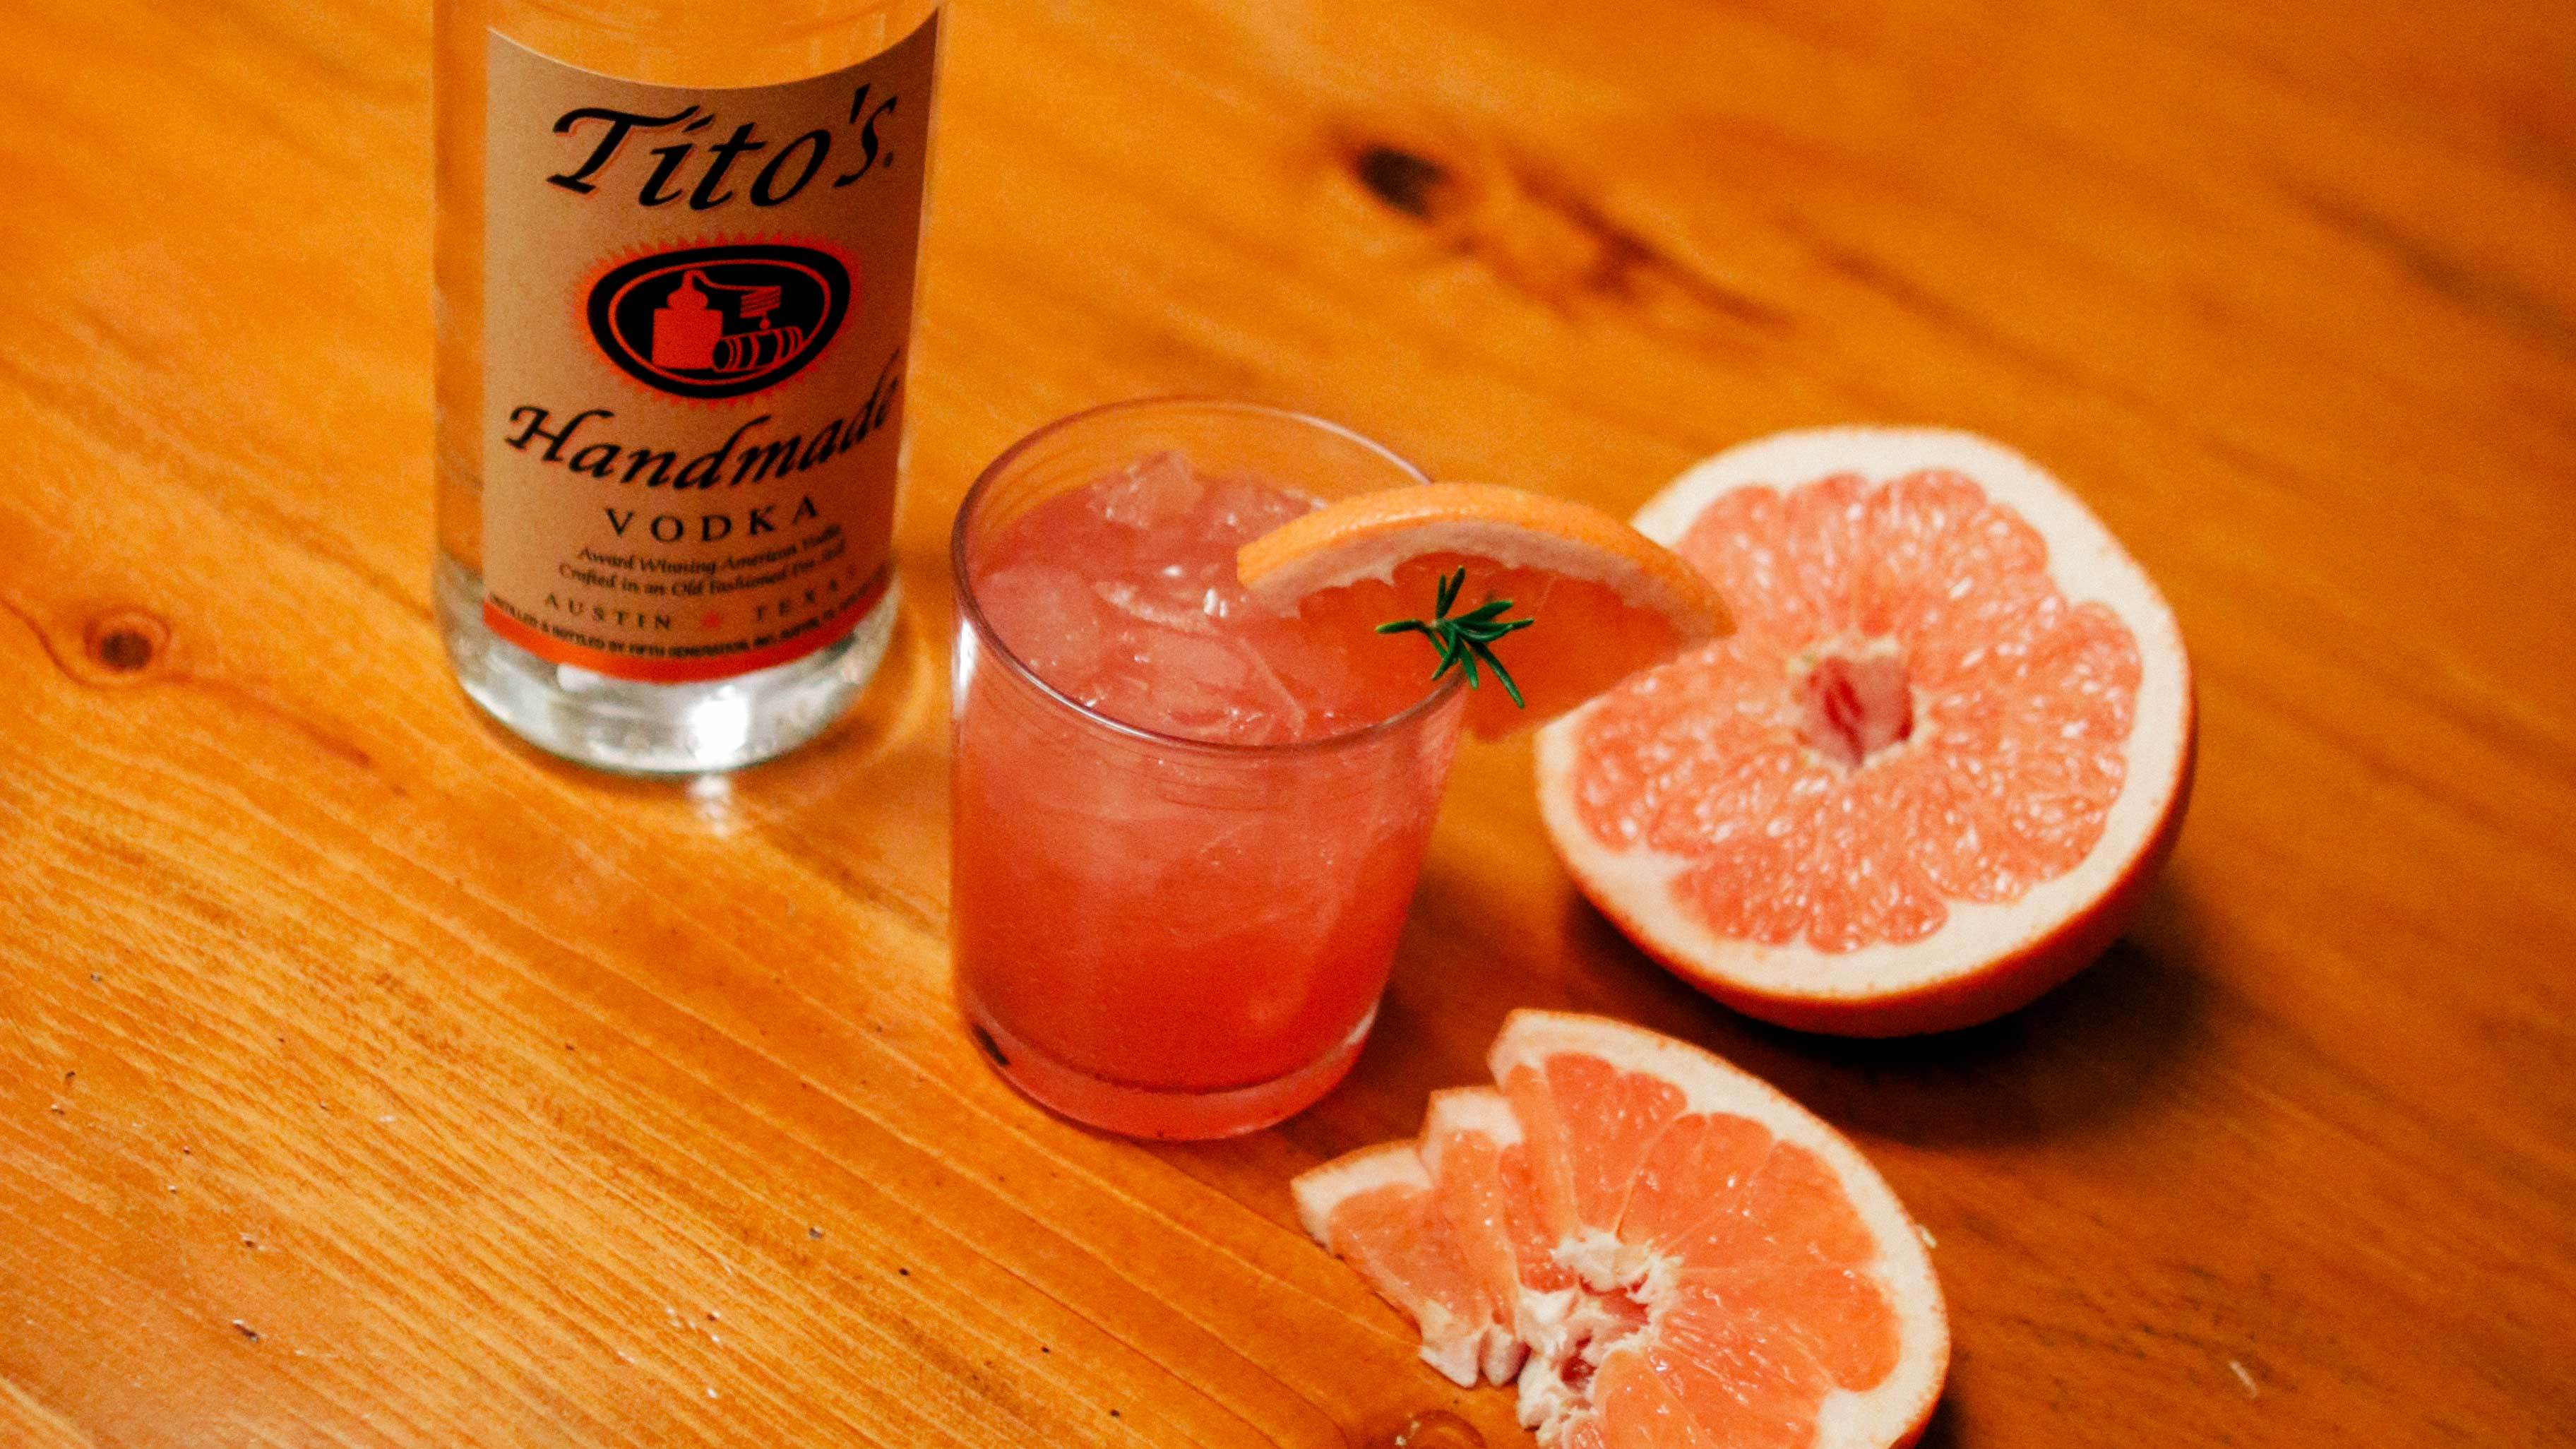 Tito's Vodka bottle next to a Tito's Greyhound garnished with a grapefruit slice